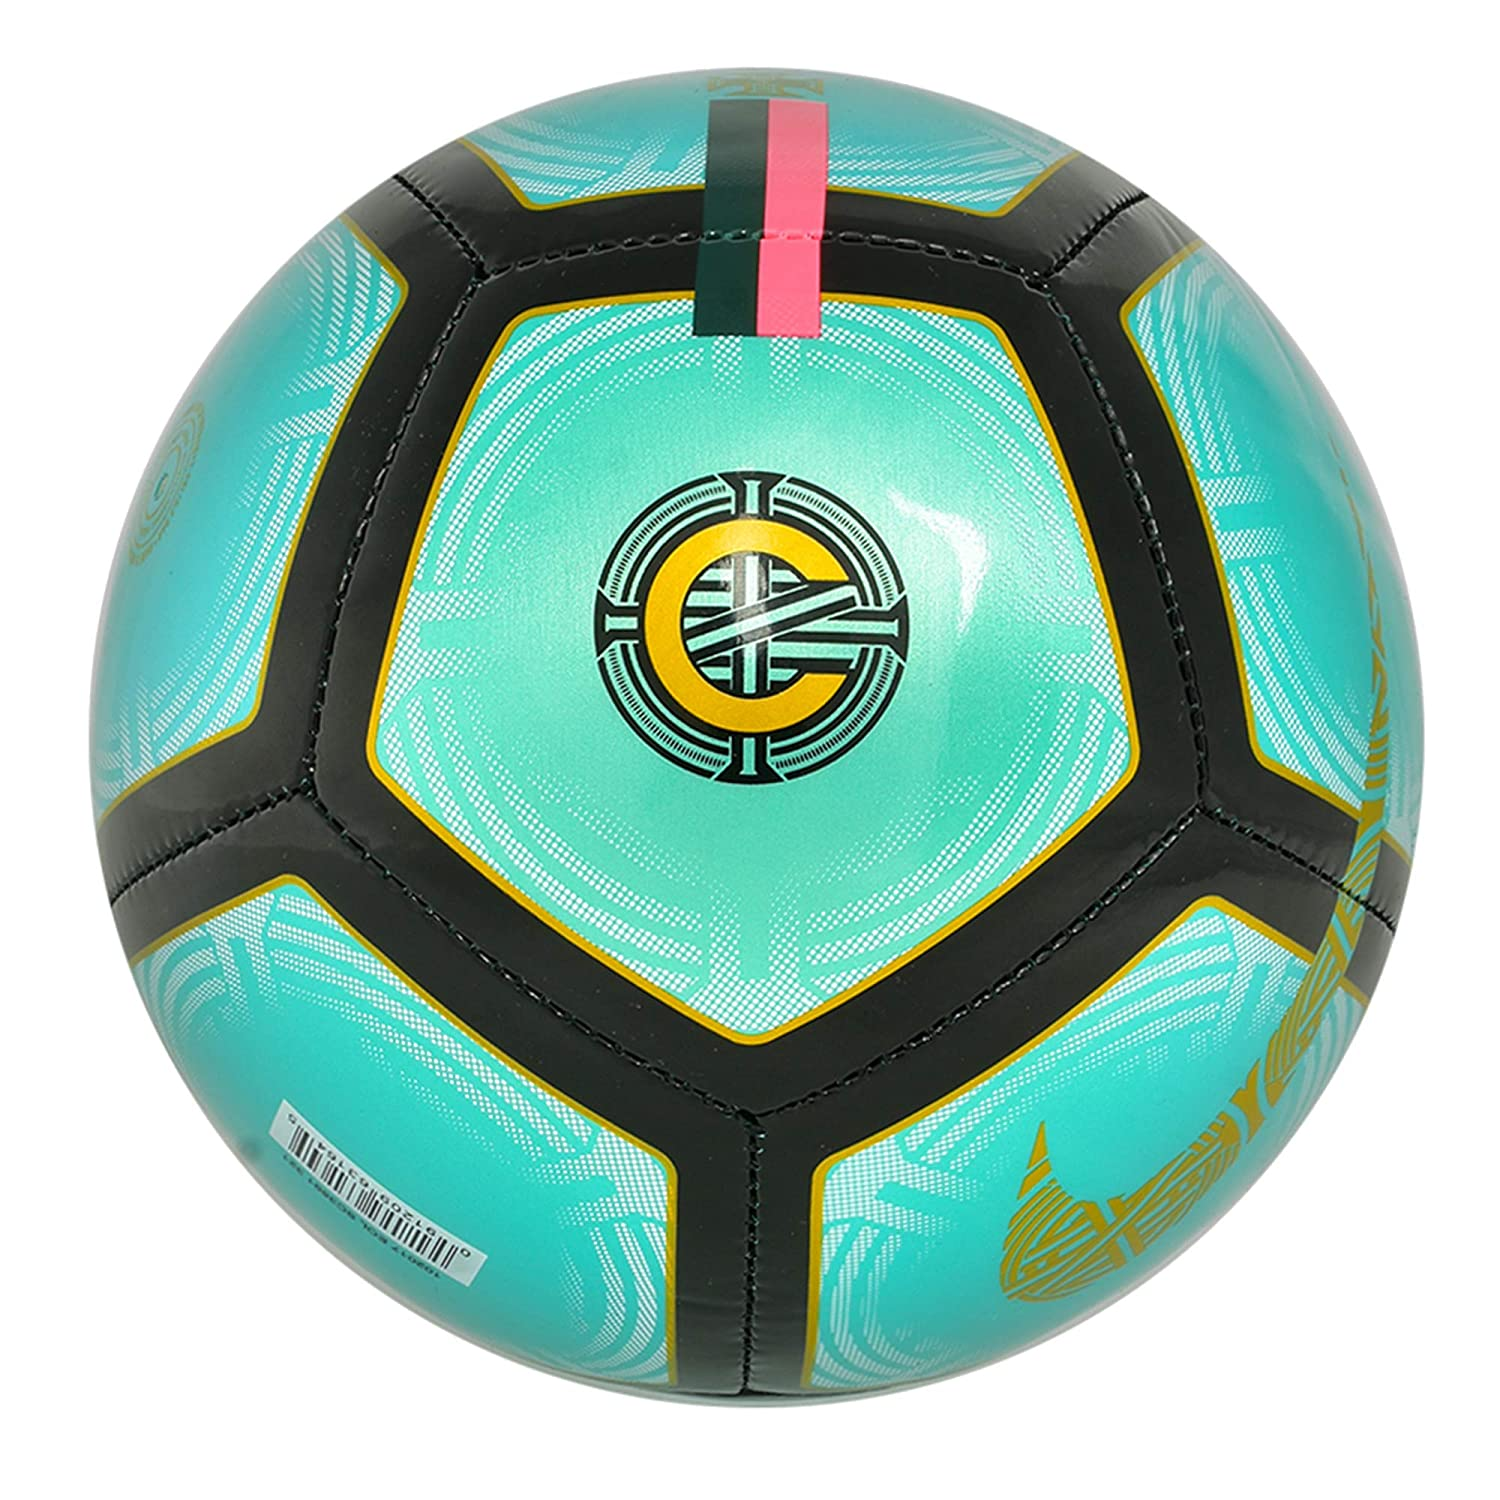 Mini Balon Nike Cr7 - Color - 0, Talla -: Amazon.es: Deportes y ...